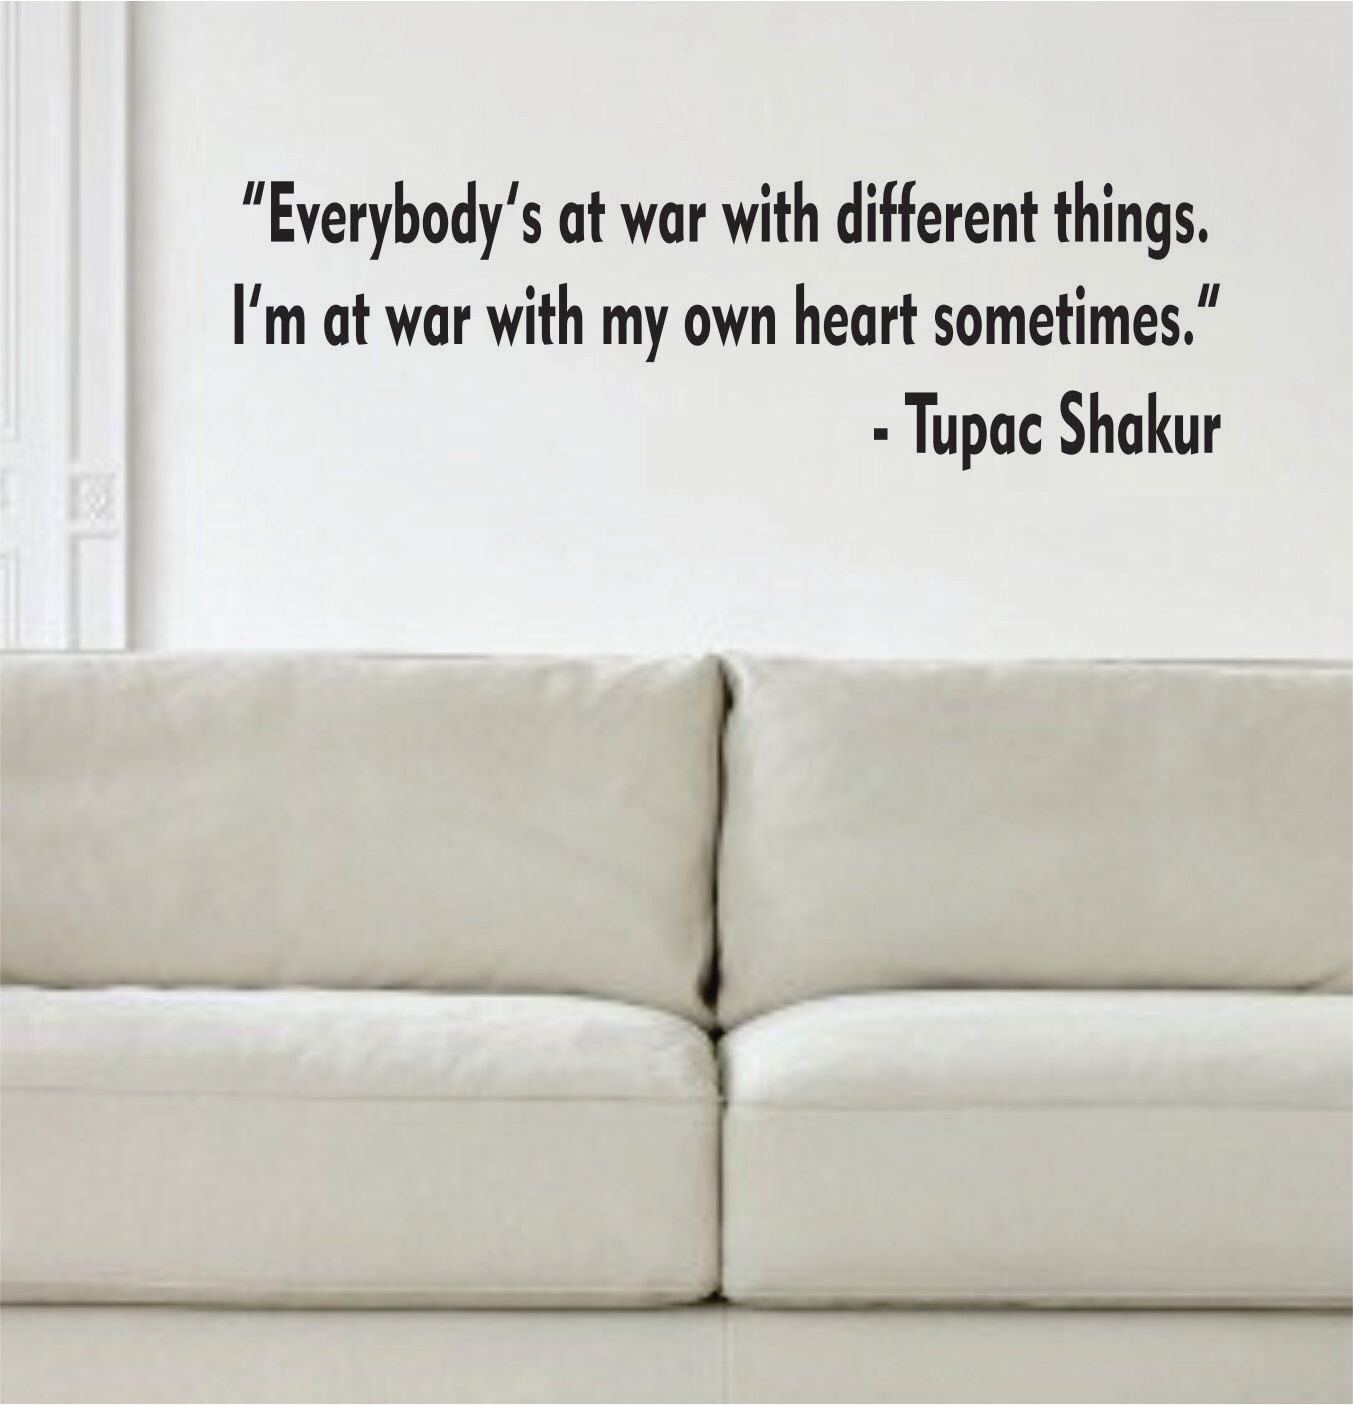 Tupac Shakur Everybodys At War Quote Decal Sticker Wall Vinyl Art Music by BoopDecals on Etsy https://www.etsy.com/listing/171860180/tupac-shakur-everybodys-at-war-quote